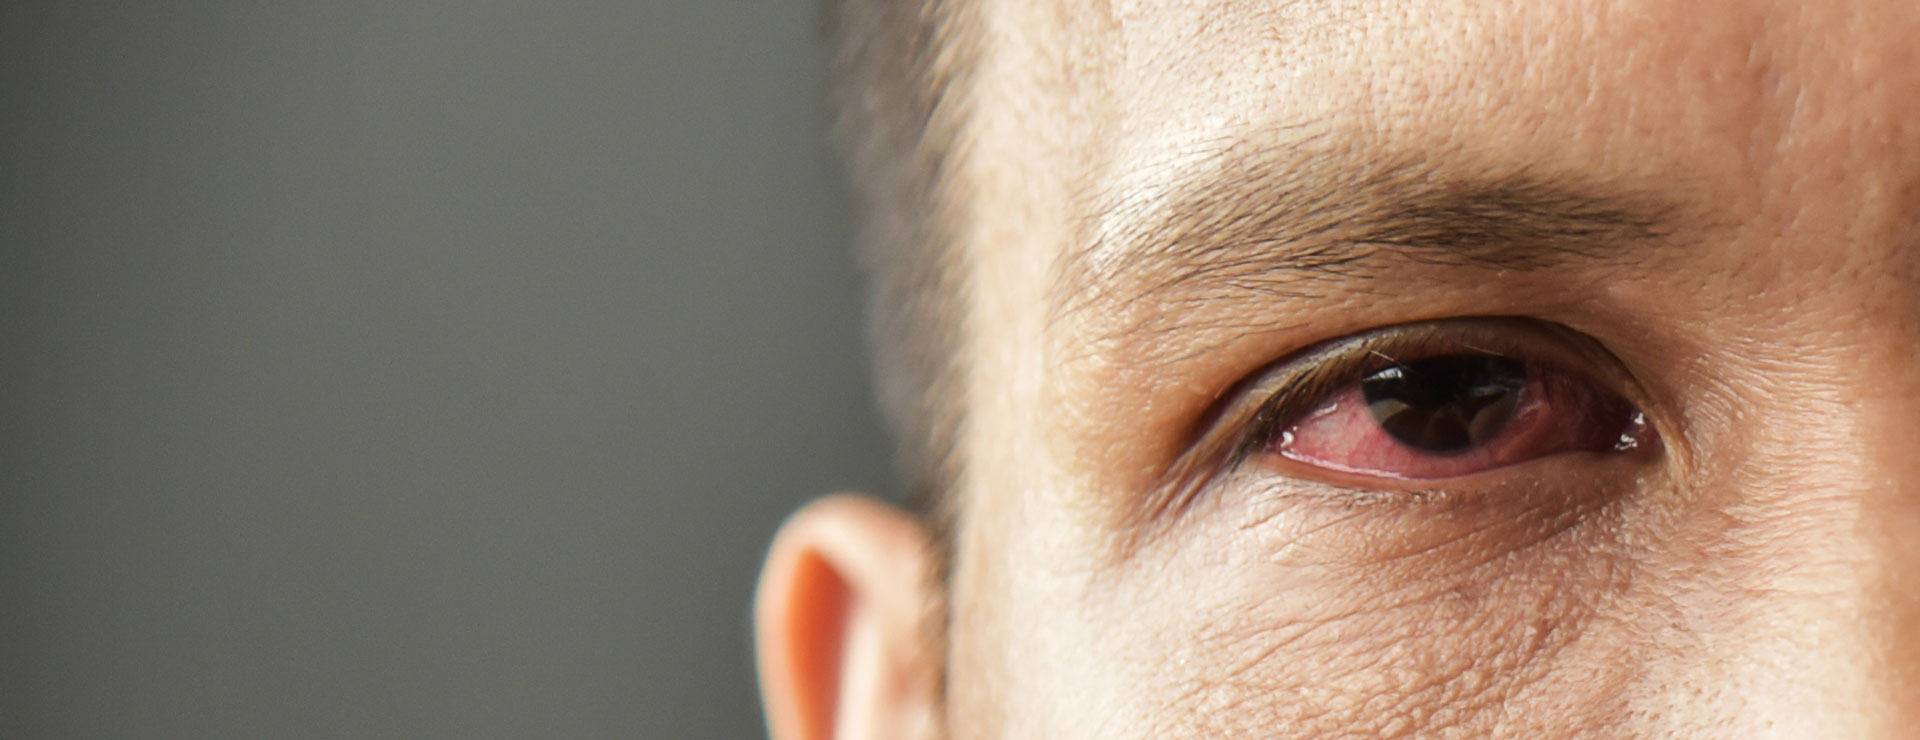 a man with redness in the eye